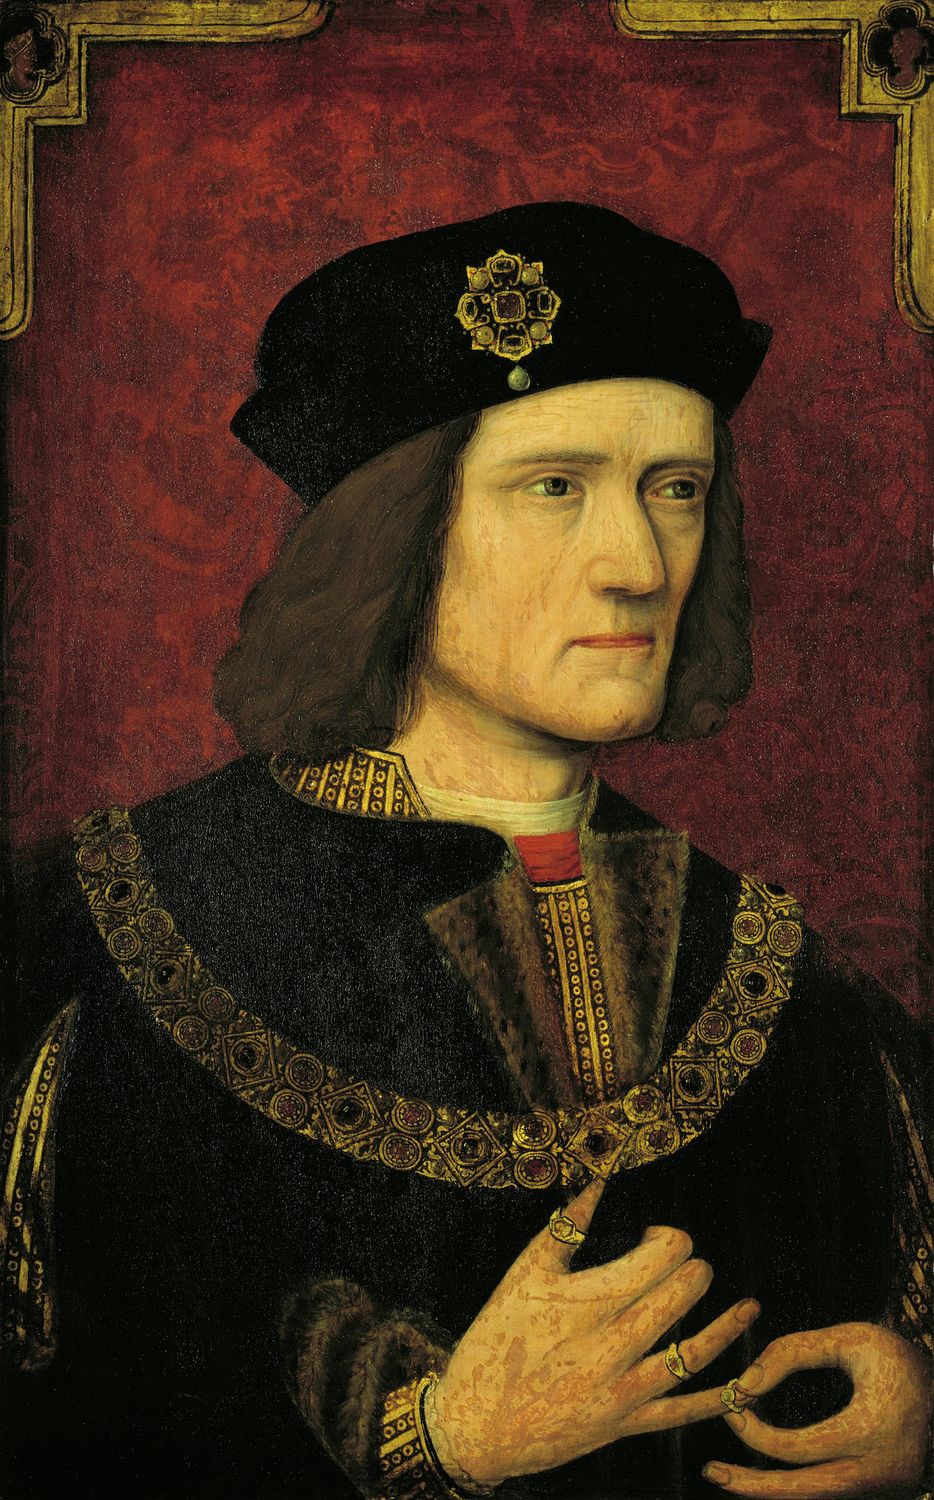 King Richard III held the title of Duke of Glo...